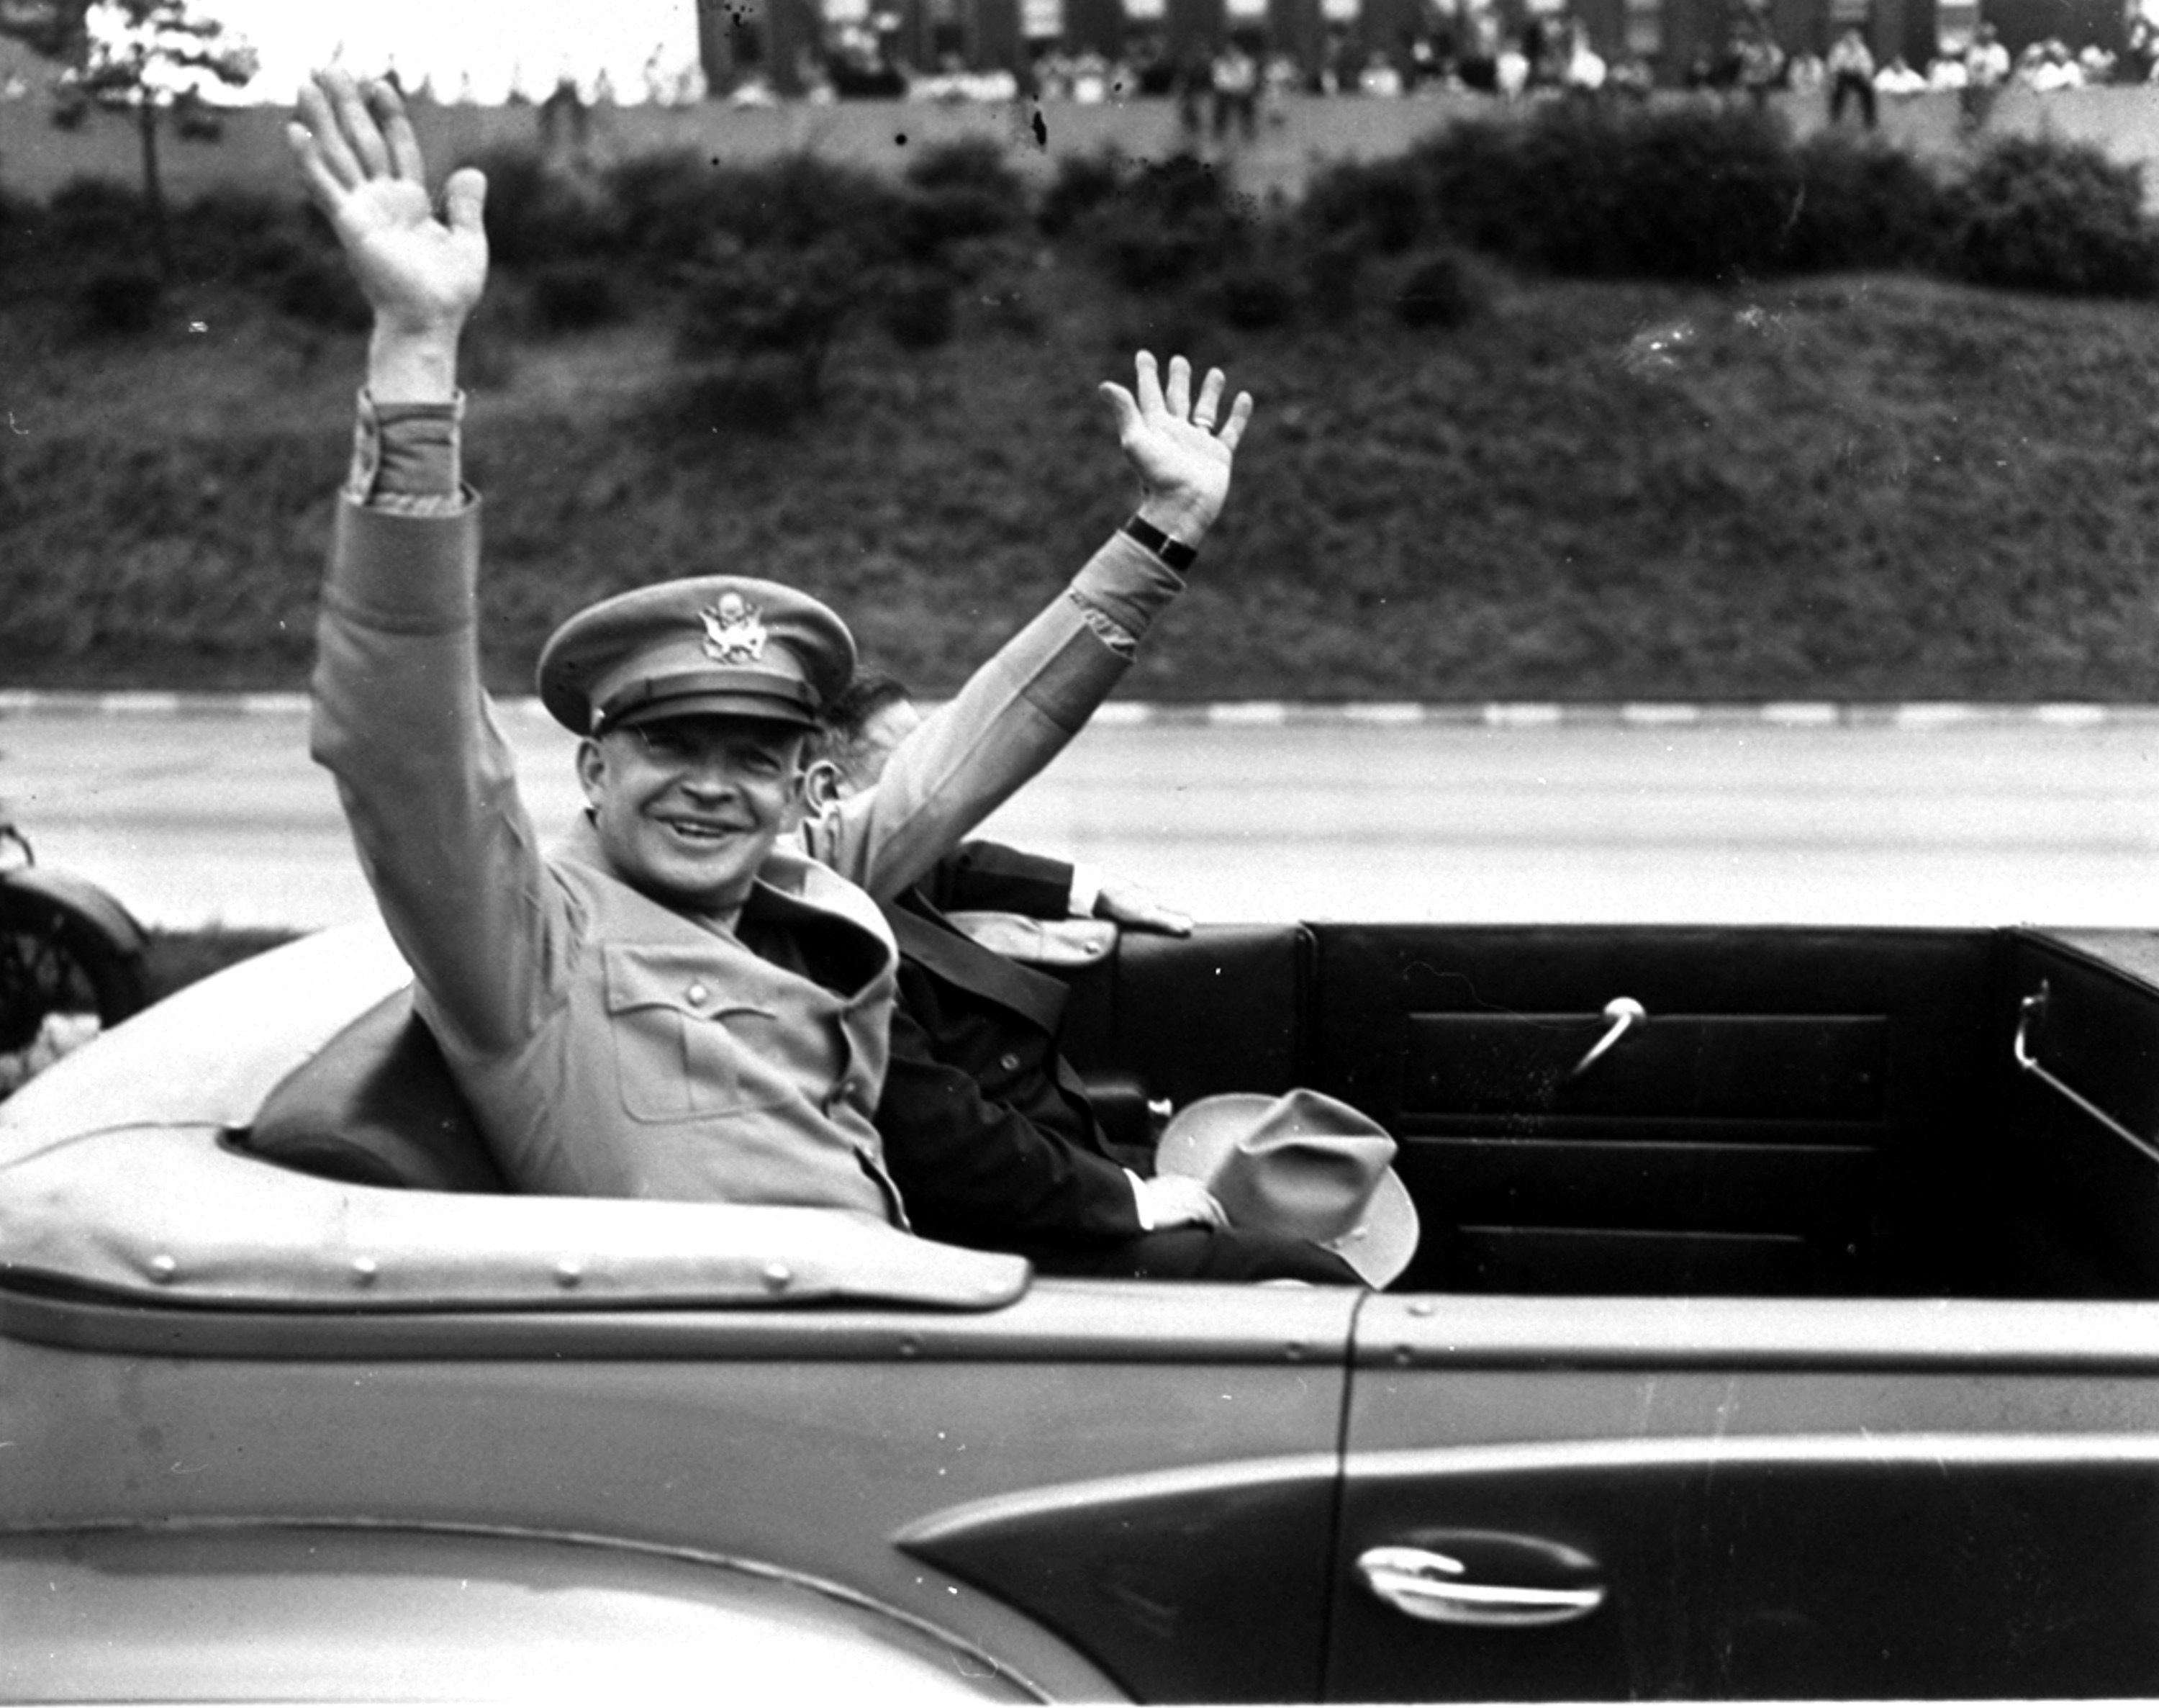 Happy birthday, Ike! Vintage photos of Dwight D. Eisenhower